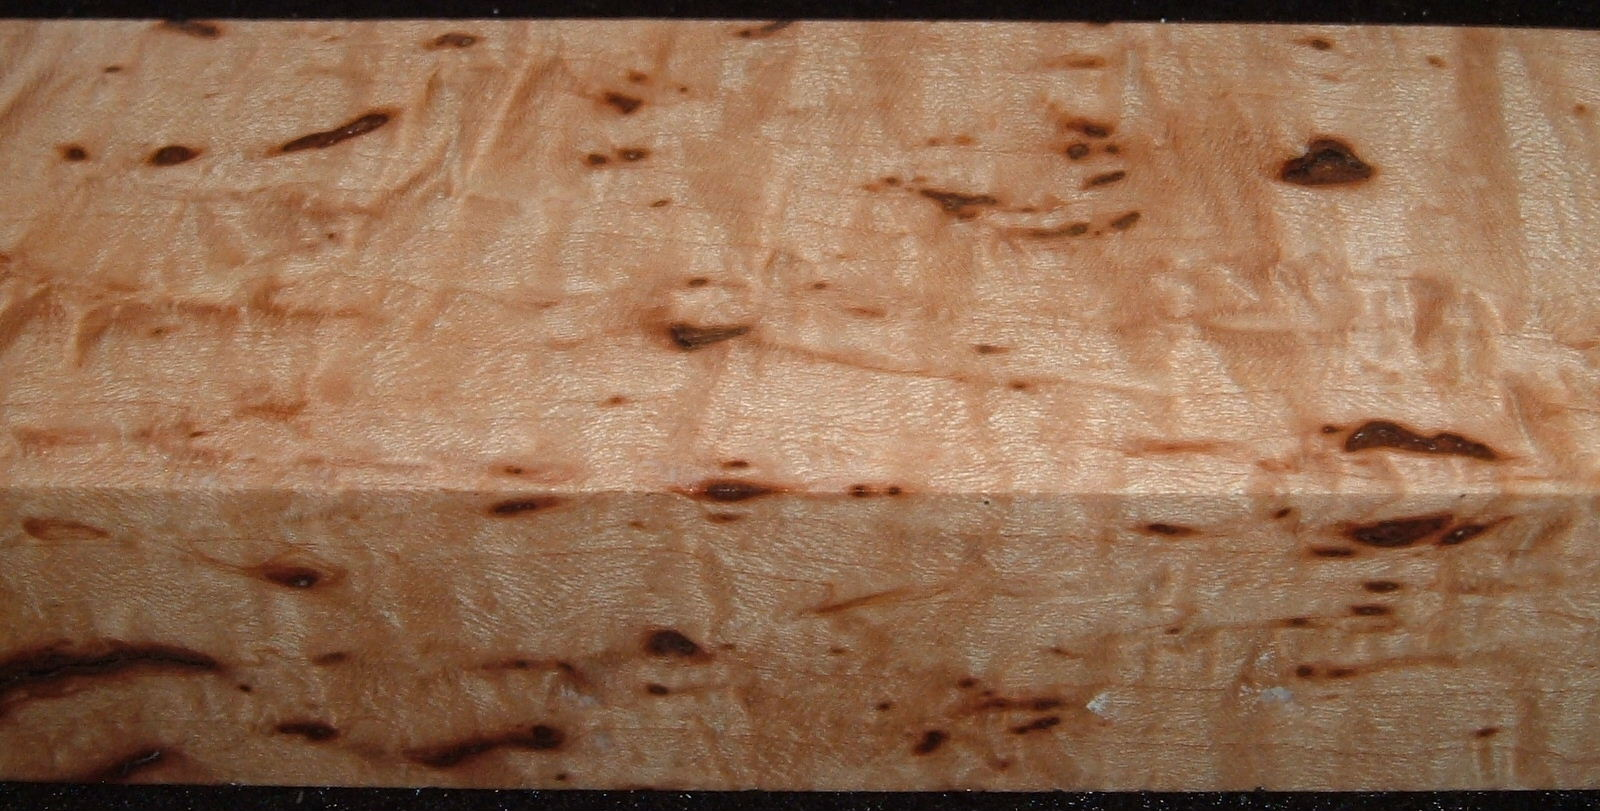 Z547, 15/16x1-3/4x5-1/4, Clear Bark Included, Curly Tiger Maple Stabilized, wood block scales/handle